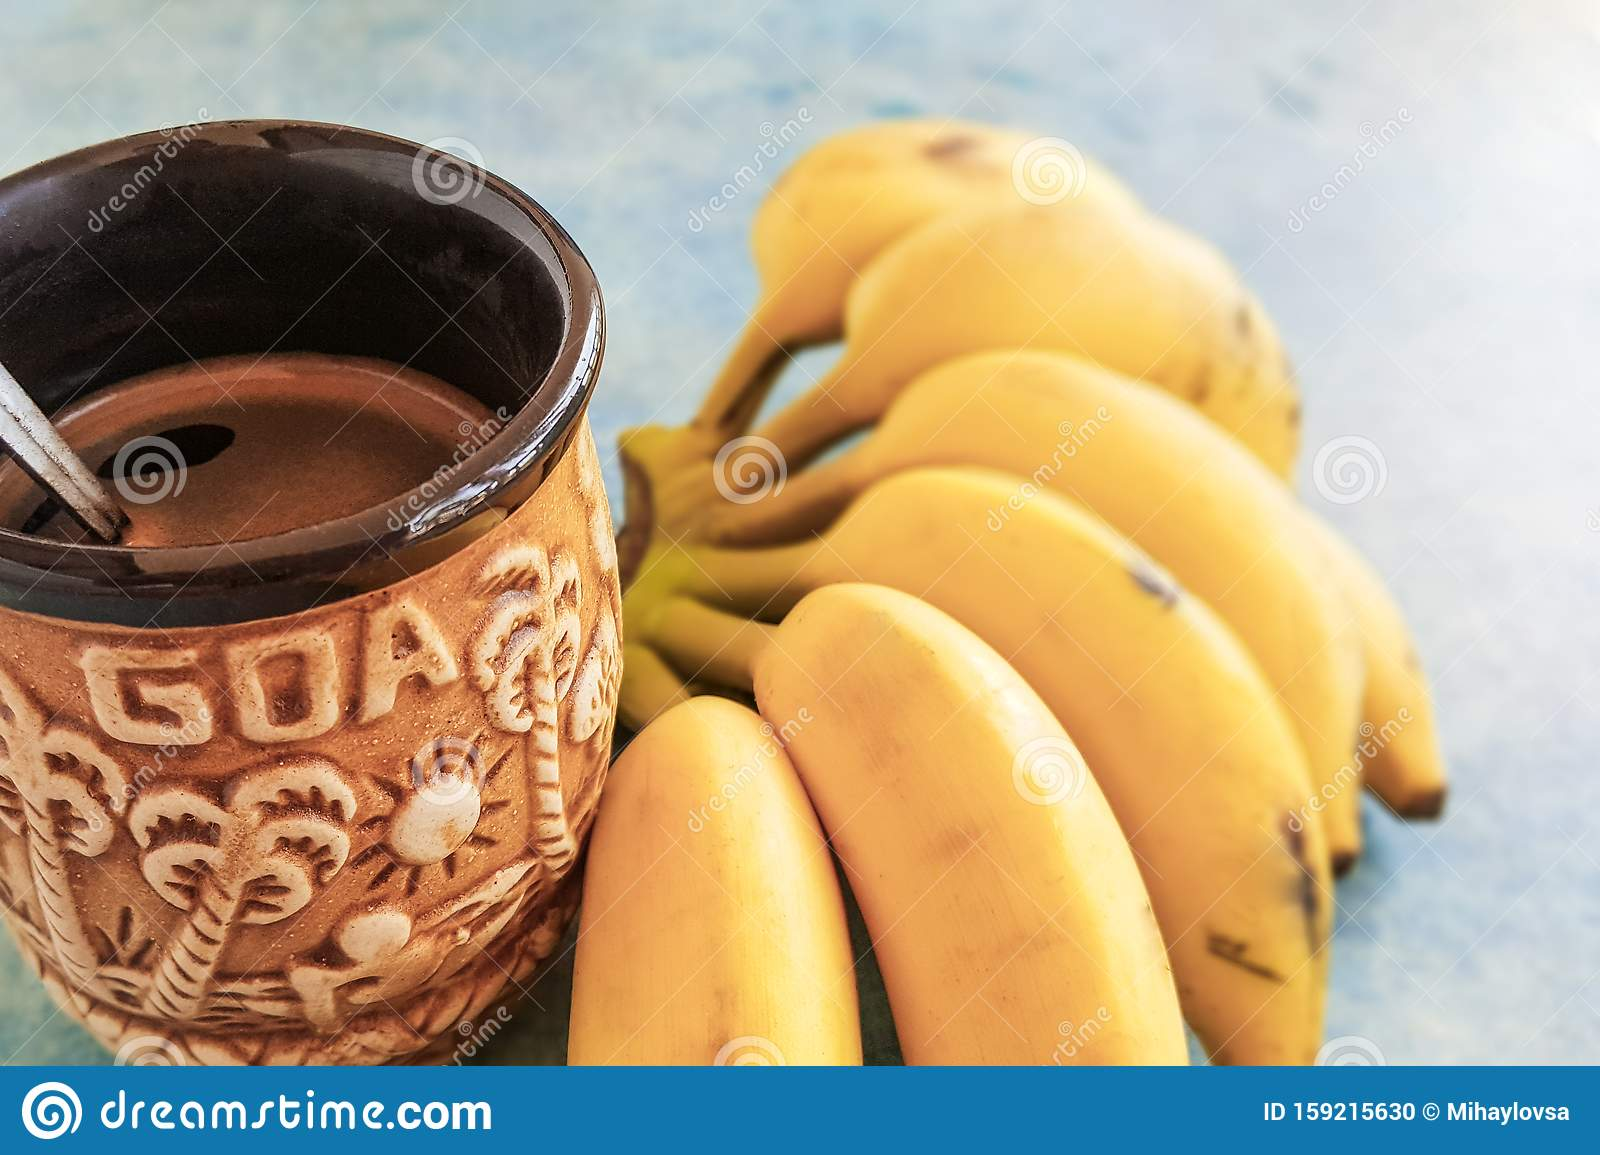 Ceramic Coffee Mug And Bunch Of Bananas Stock Photo Image Of Break Cafe 159215630